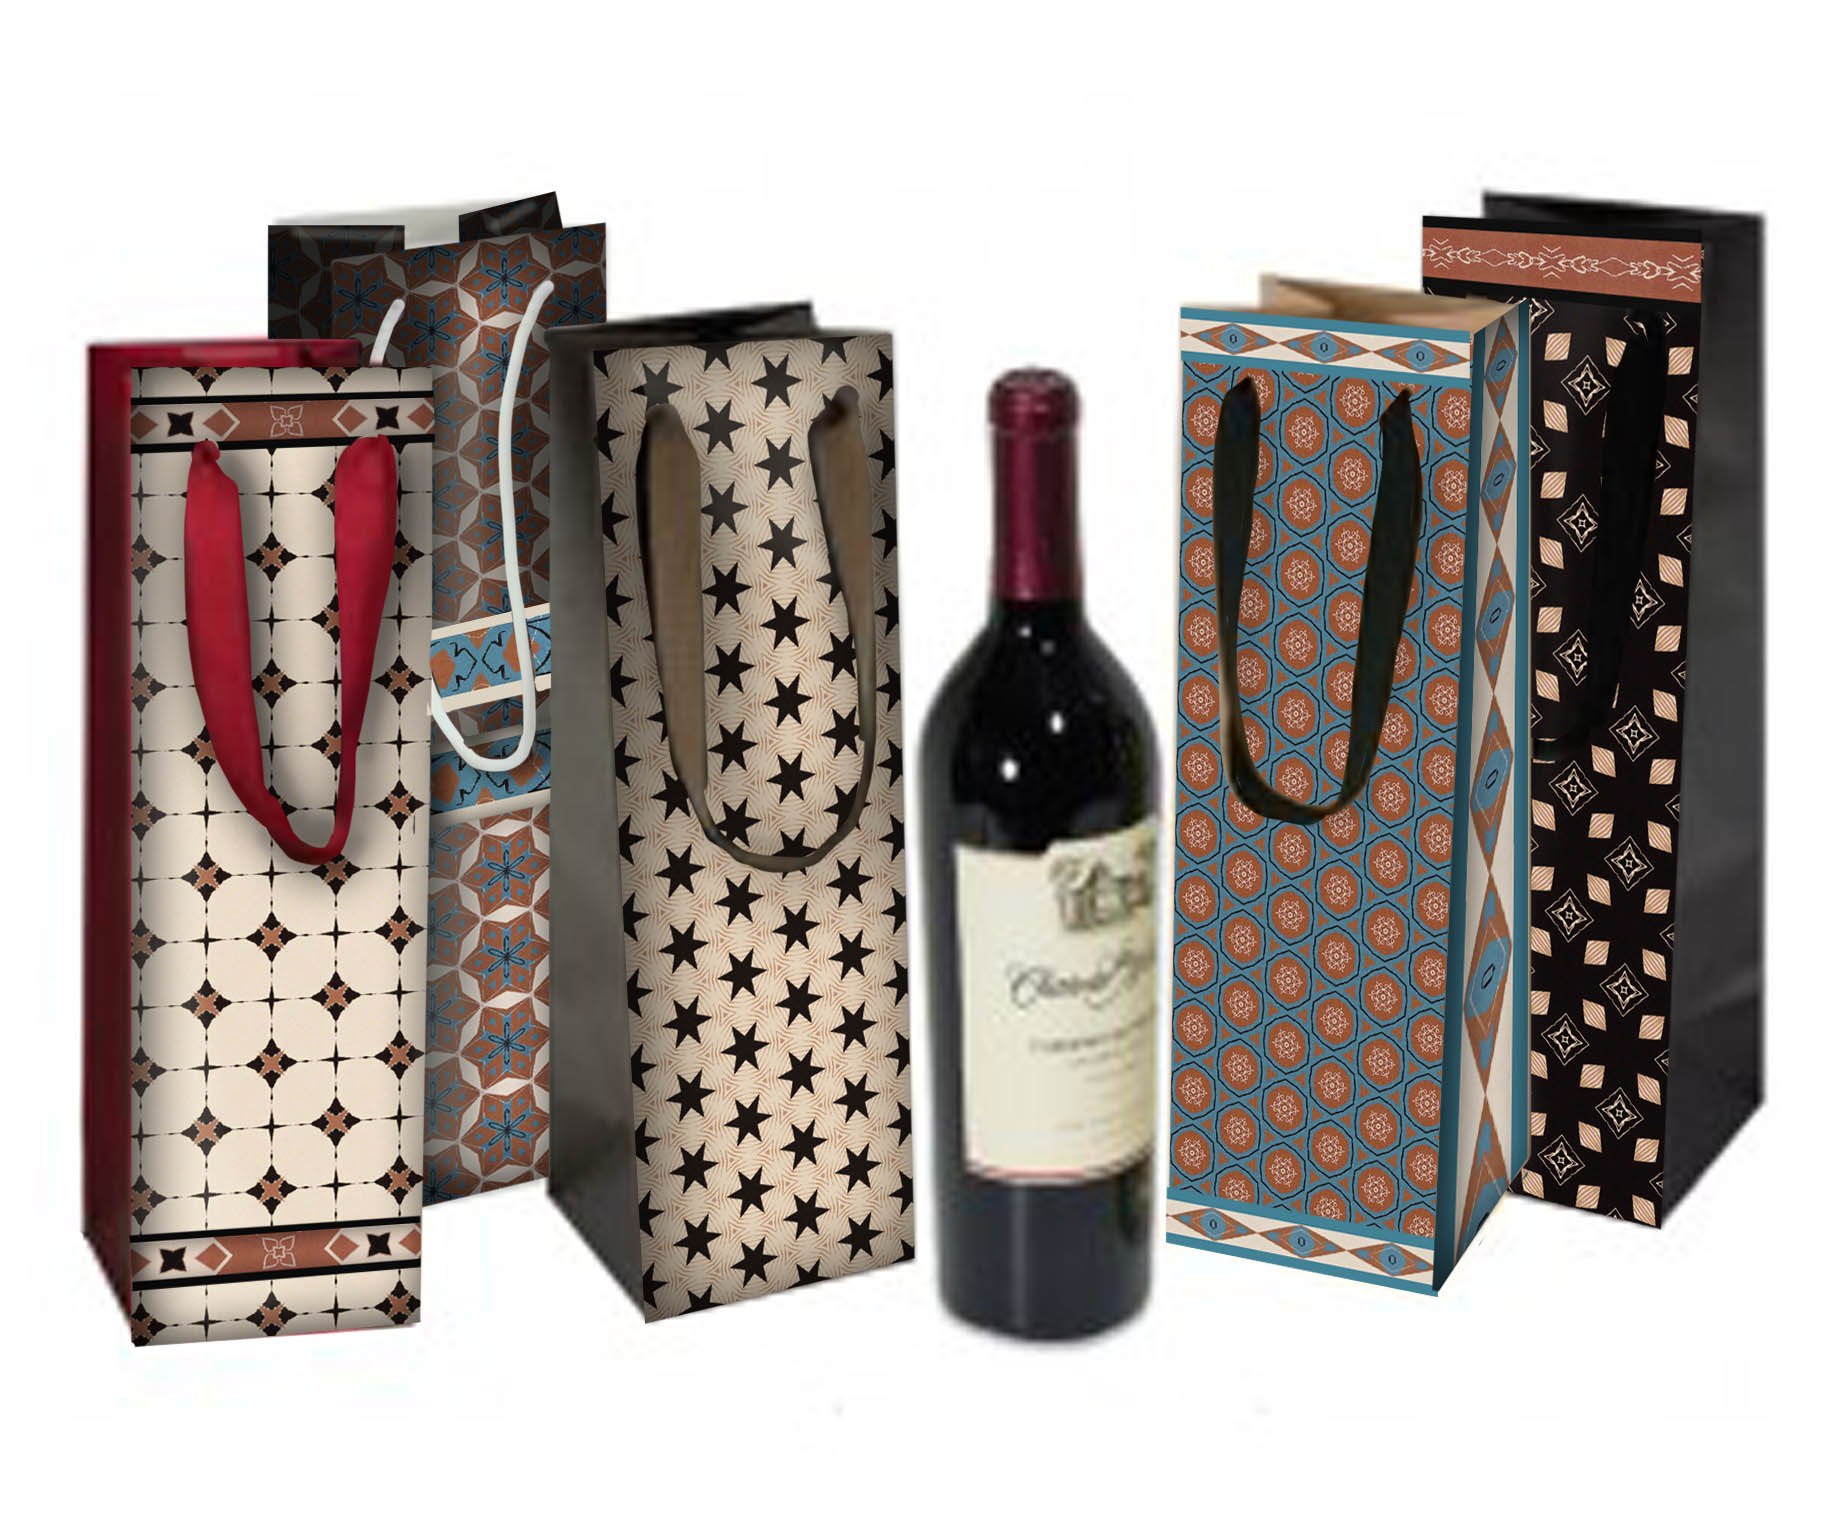 Wine bag comps